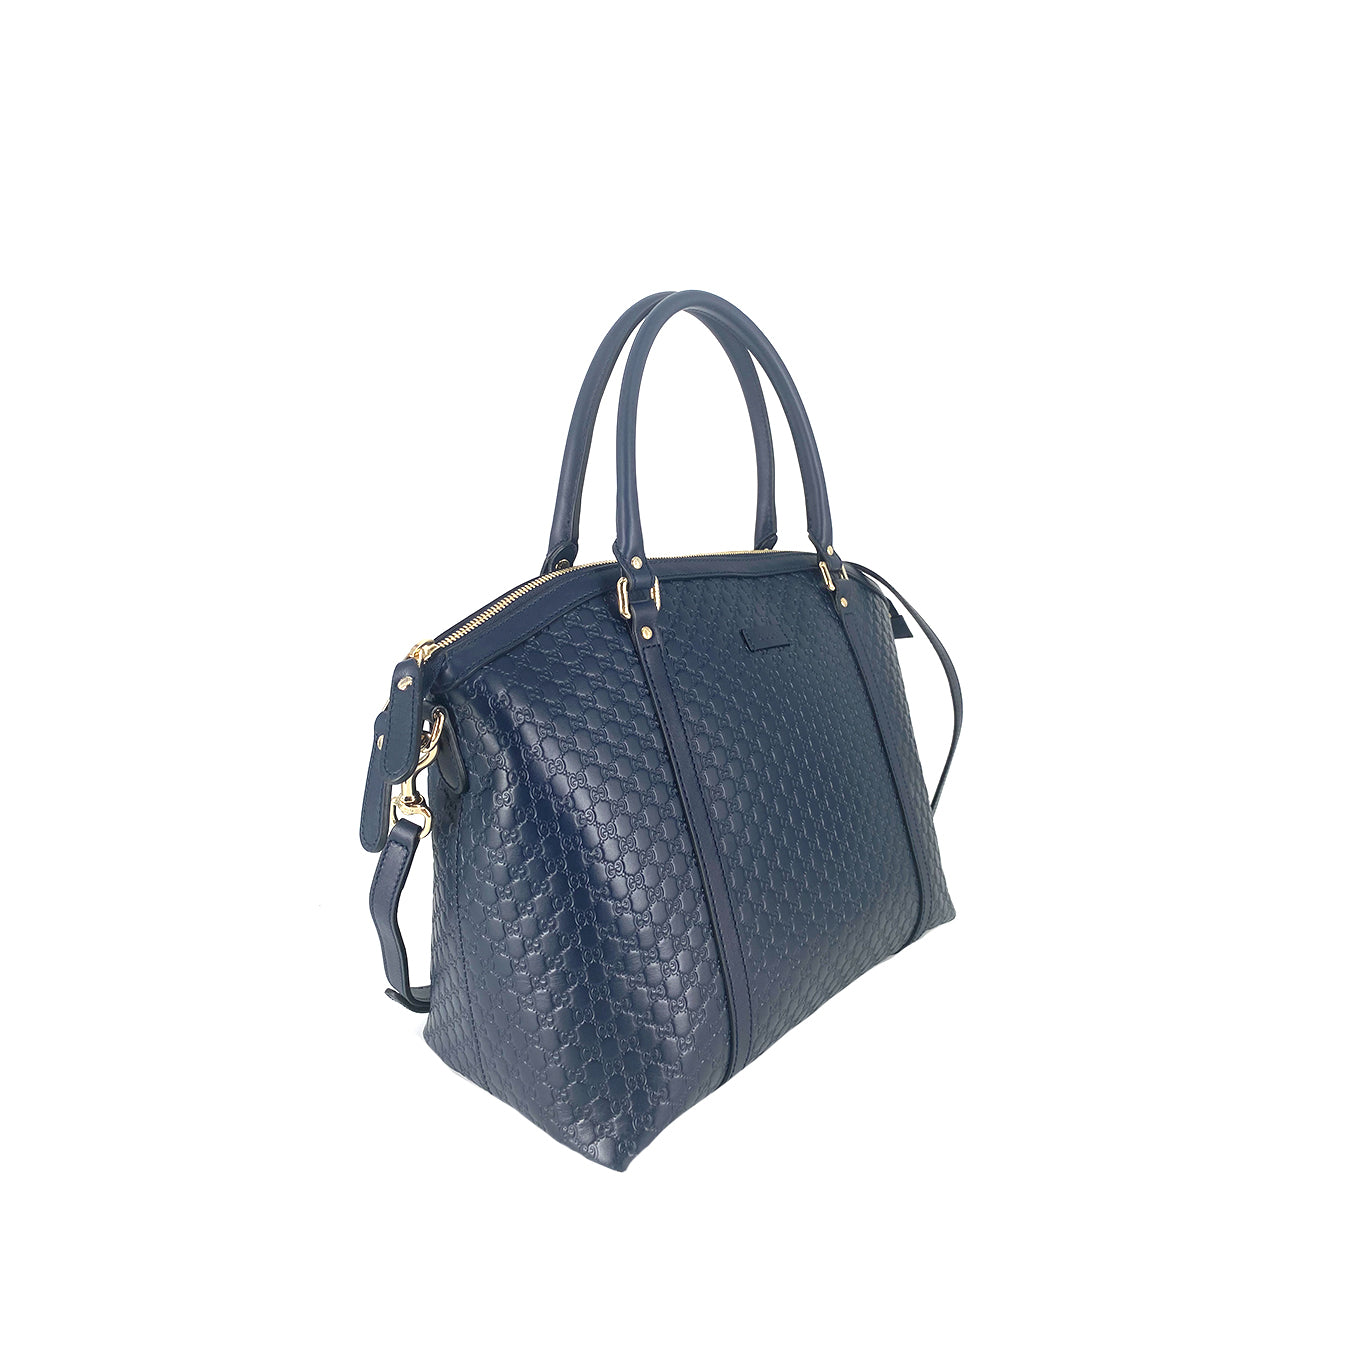 Gucci Microguccissima Alma Large Satchel in Navy